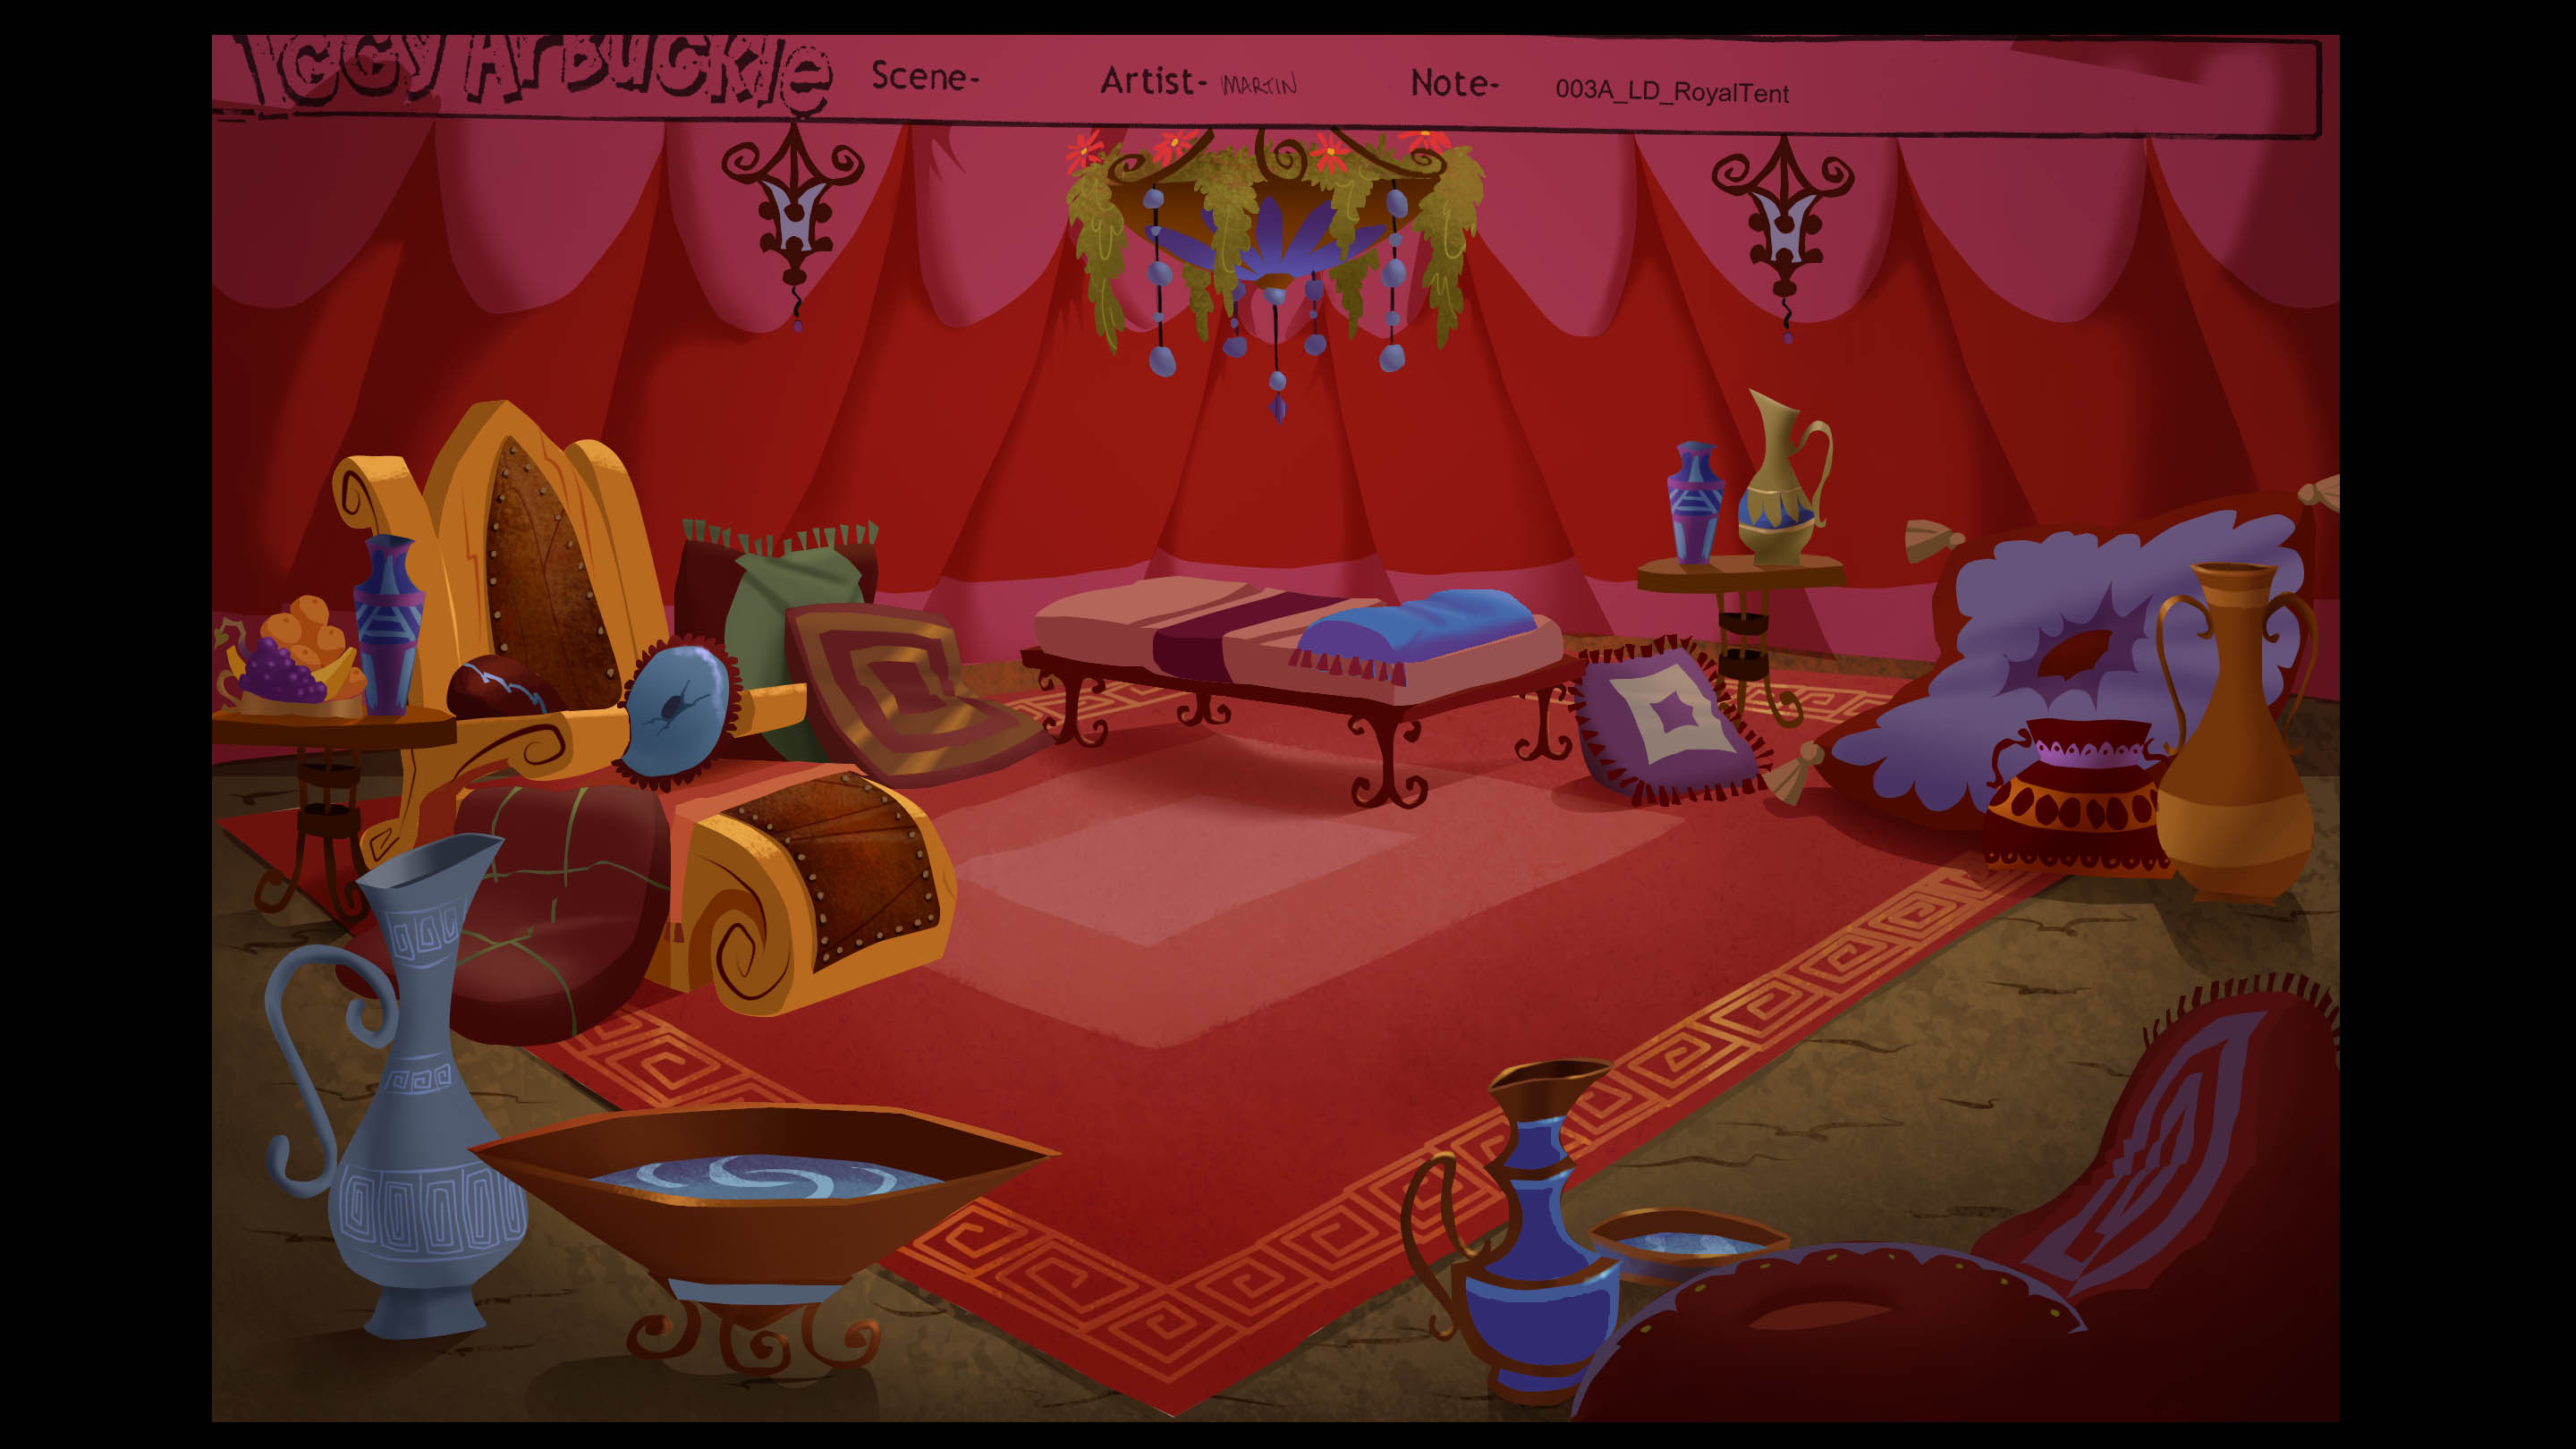 003A_CK_LD_Royal_Tent_v2